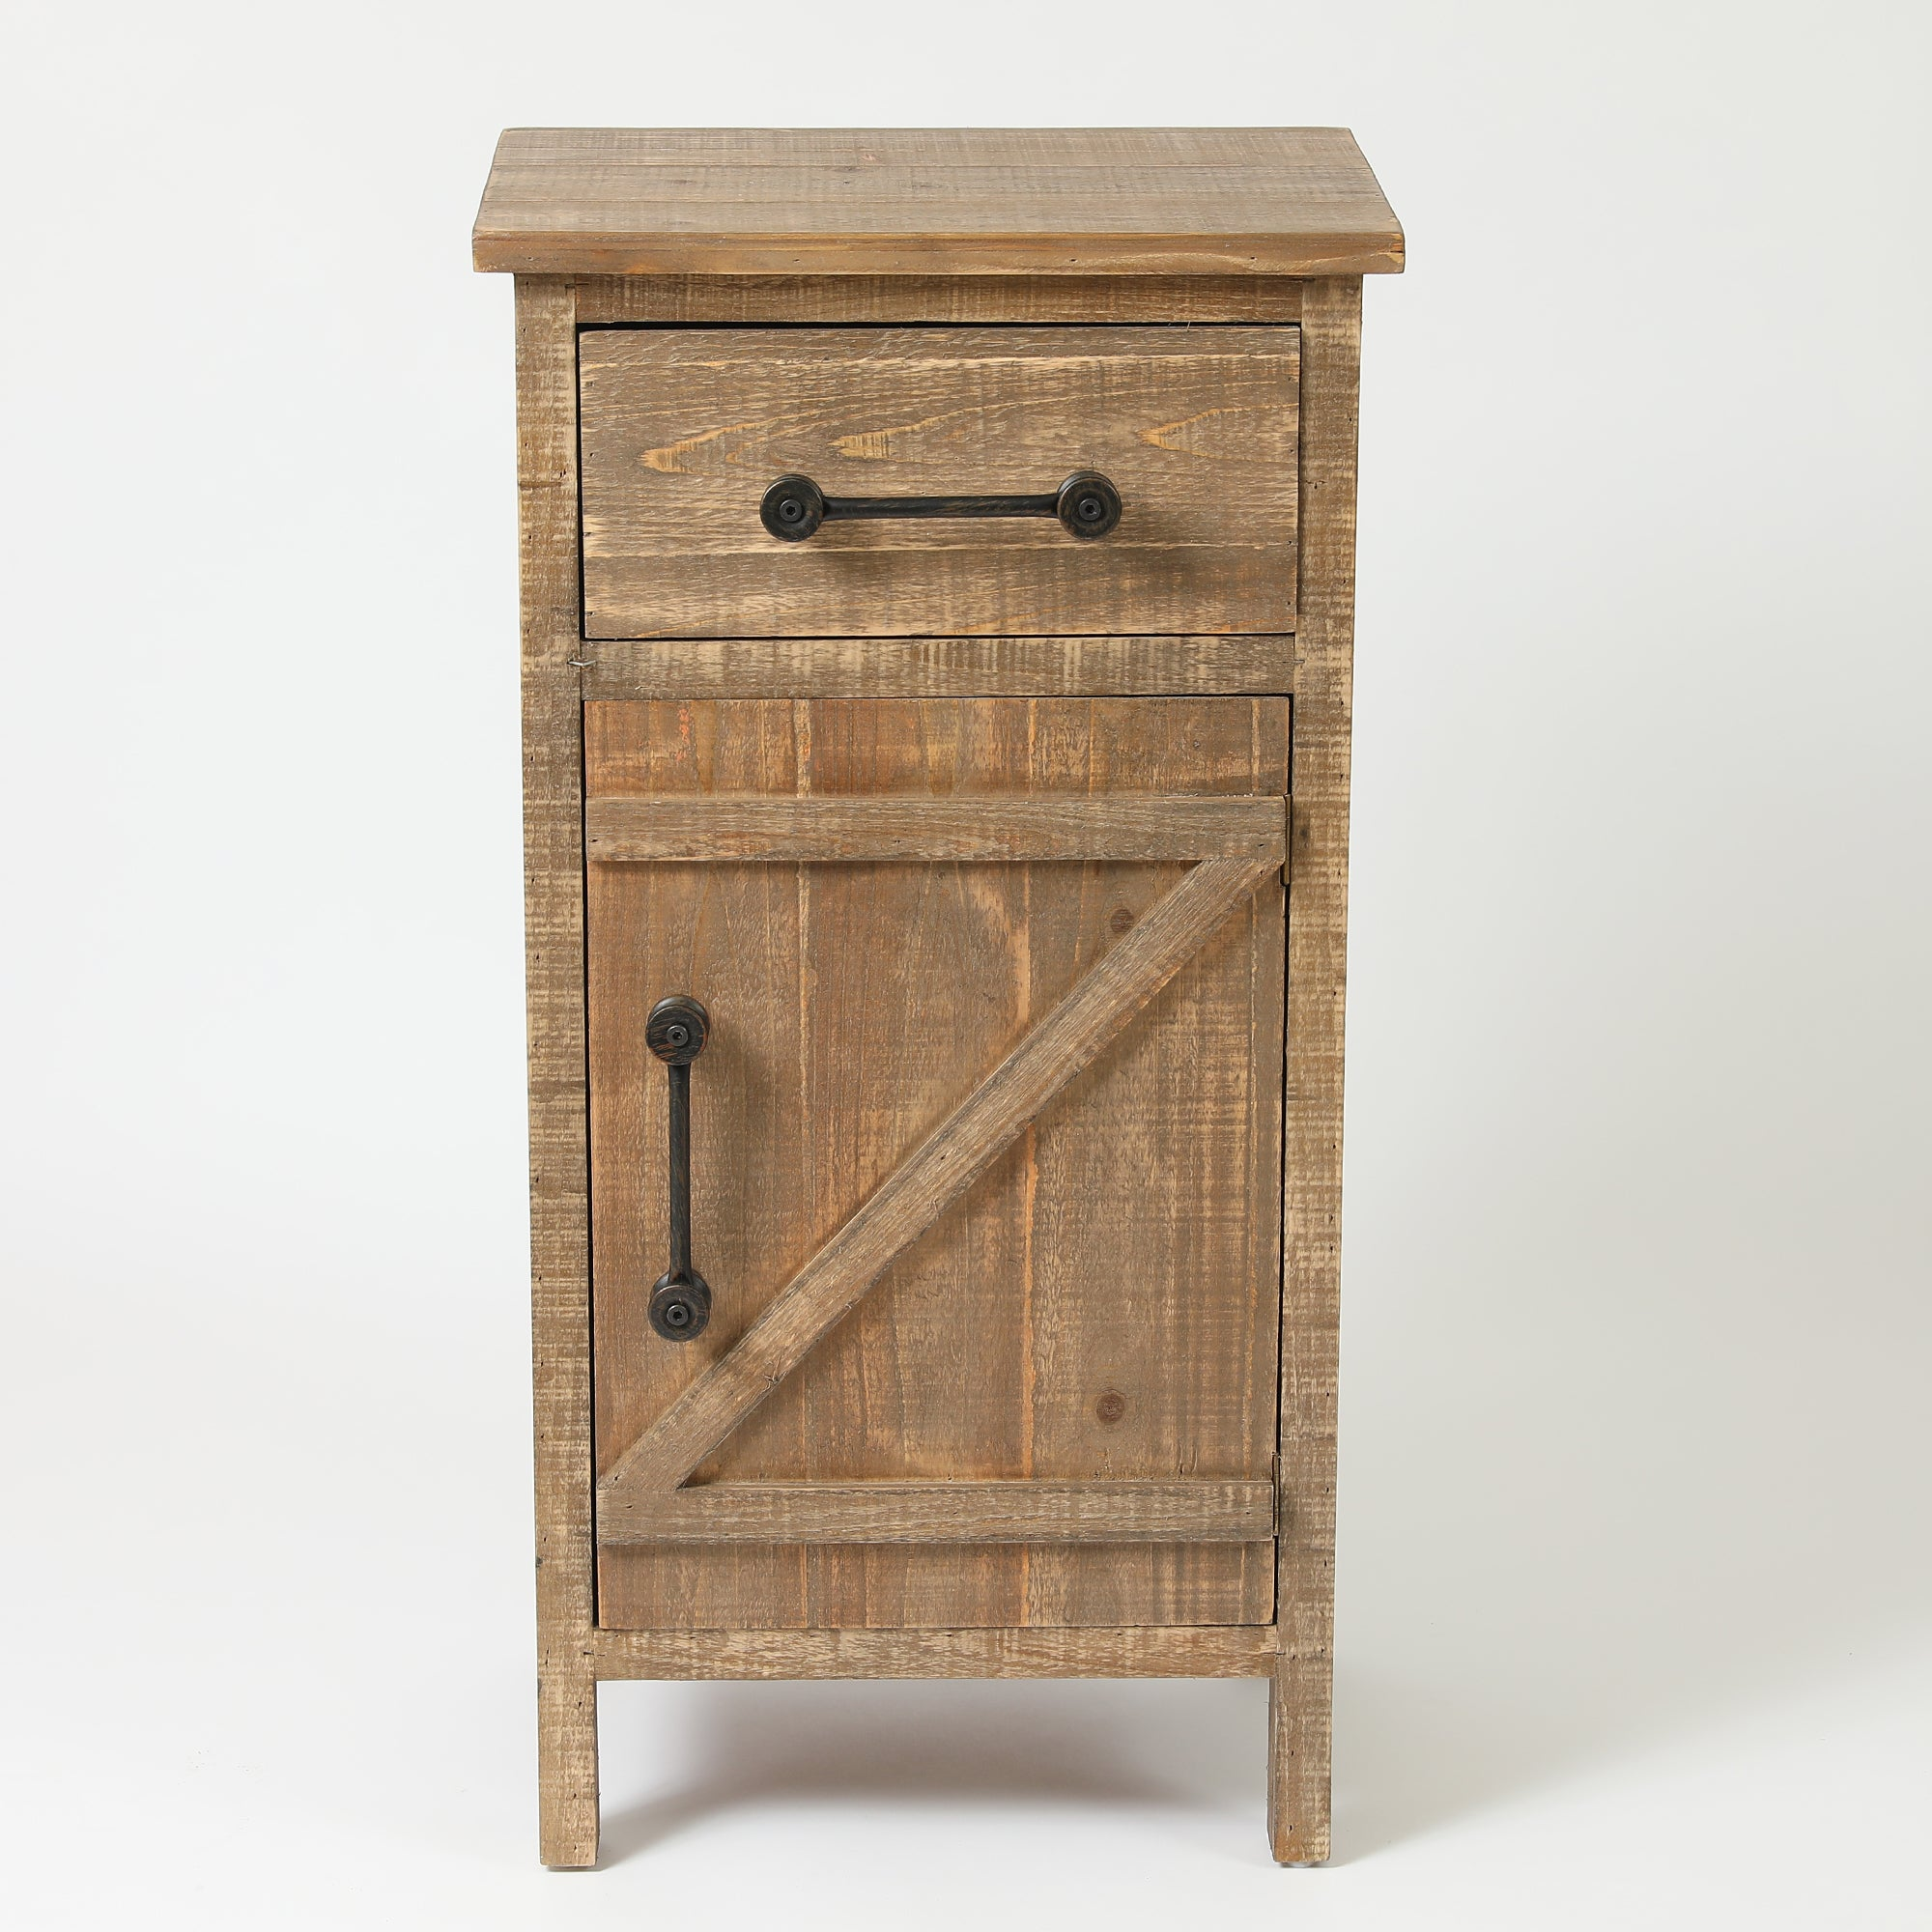 Merveilleux Shop Brown Wood Distressed Small Rustic Console Cabinet   On Sale   Free  Shipping Today   Overstock.com   19224257